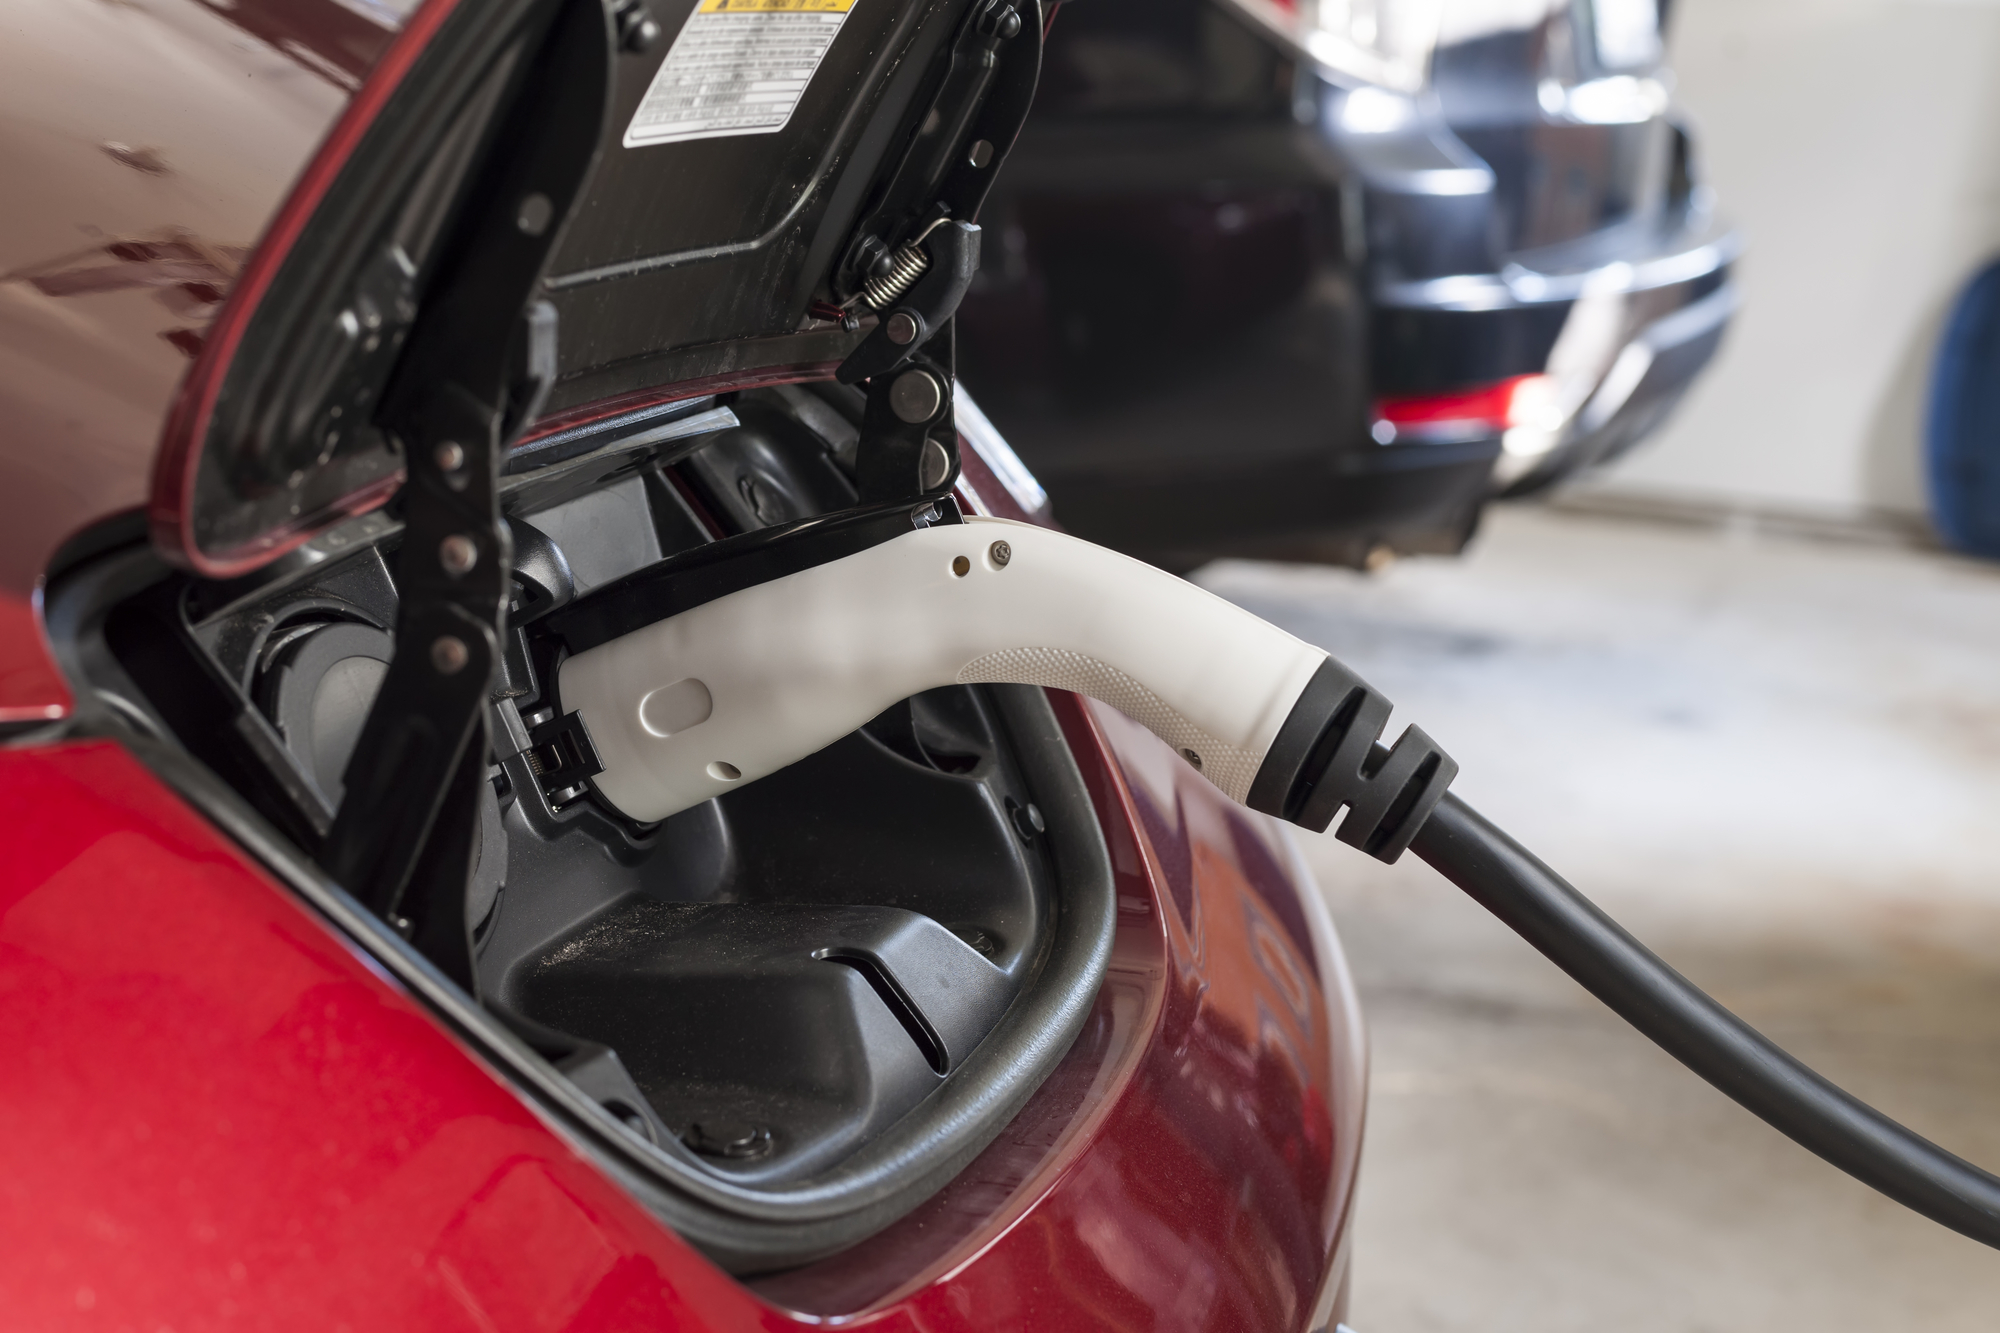 Home Electric Vehicle Charging Station